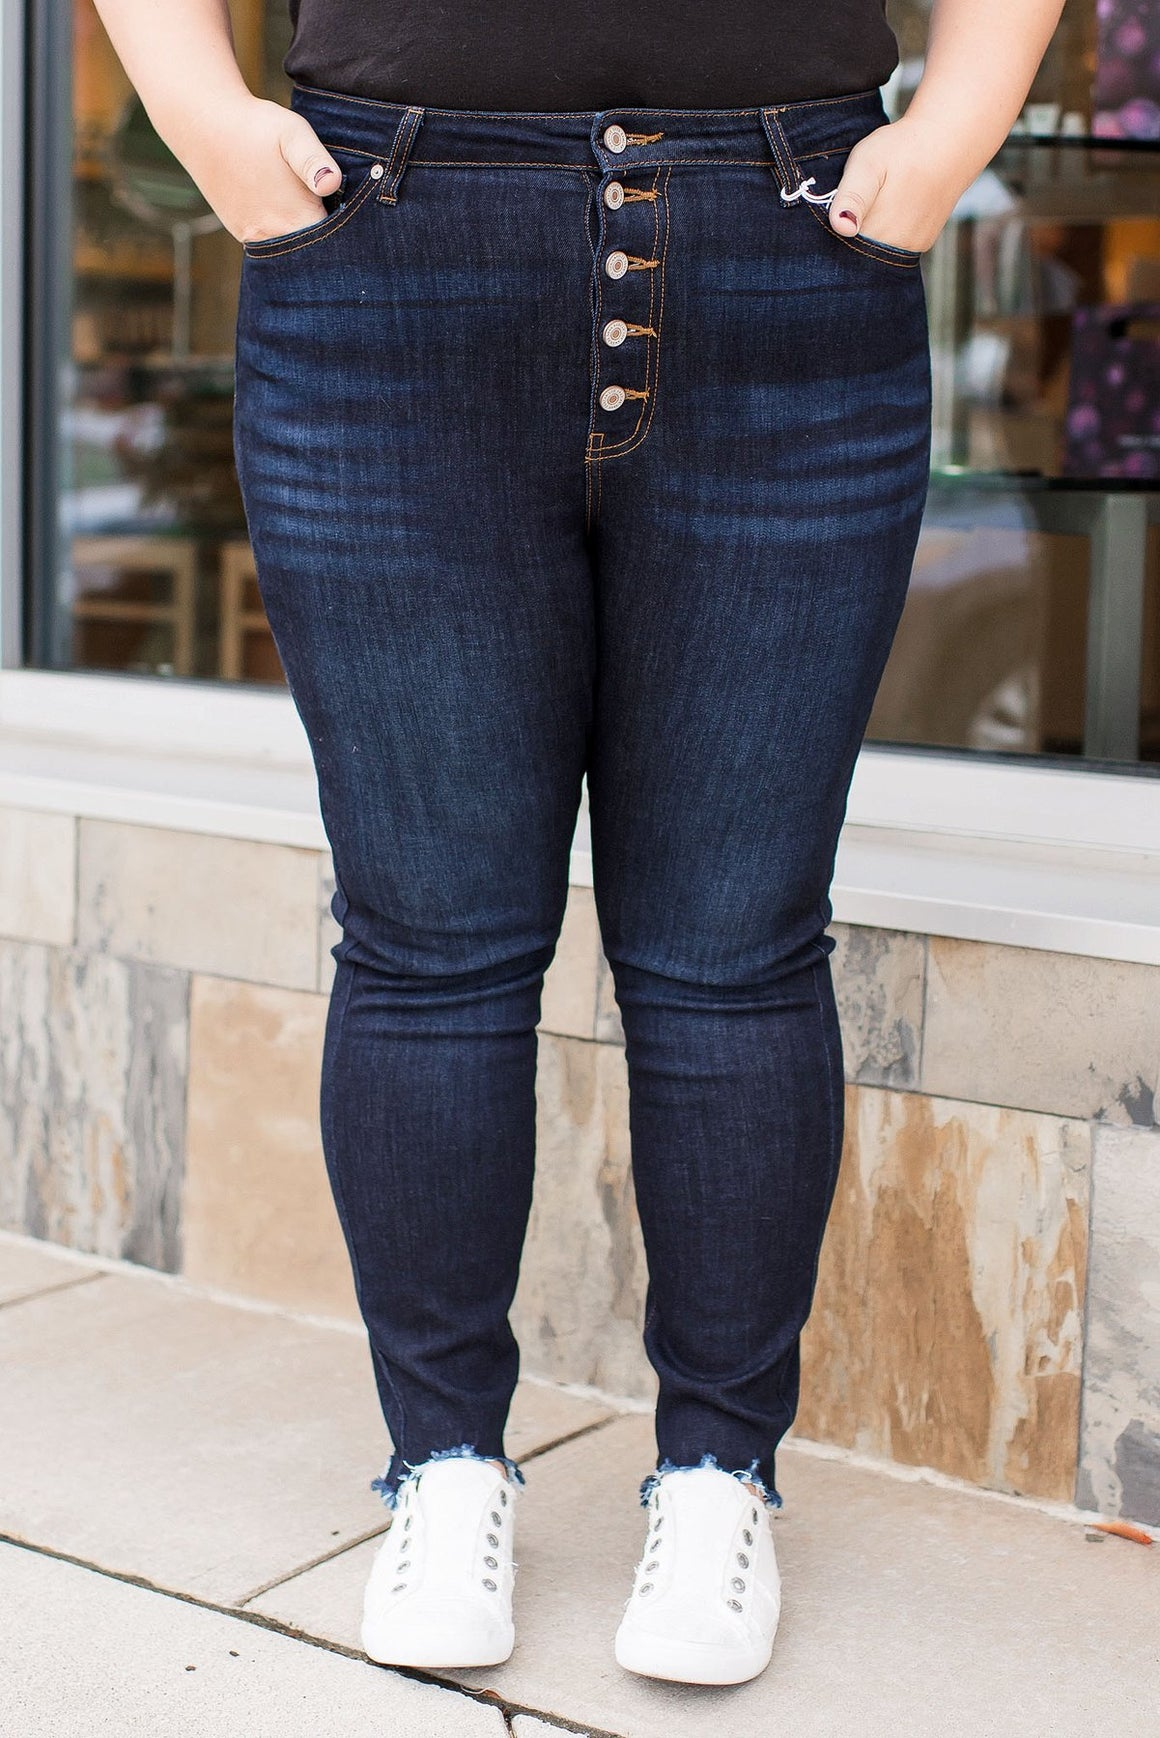 Kancan Curvy Exposed Button Jean